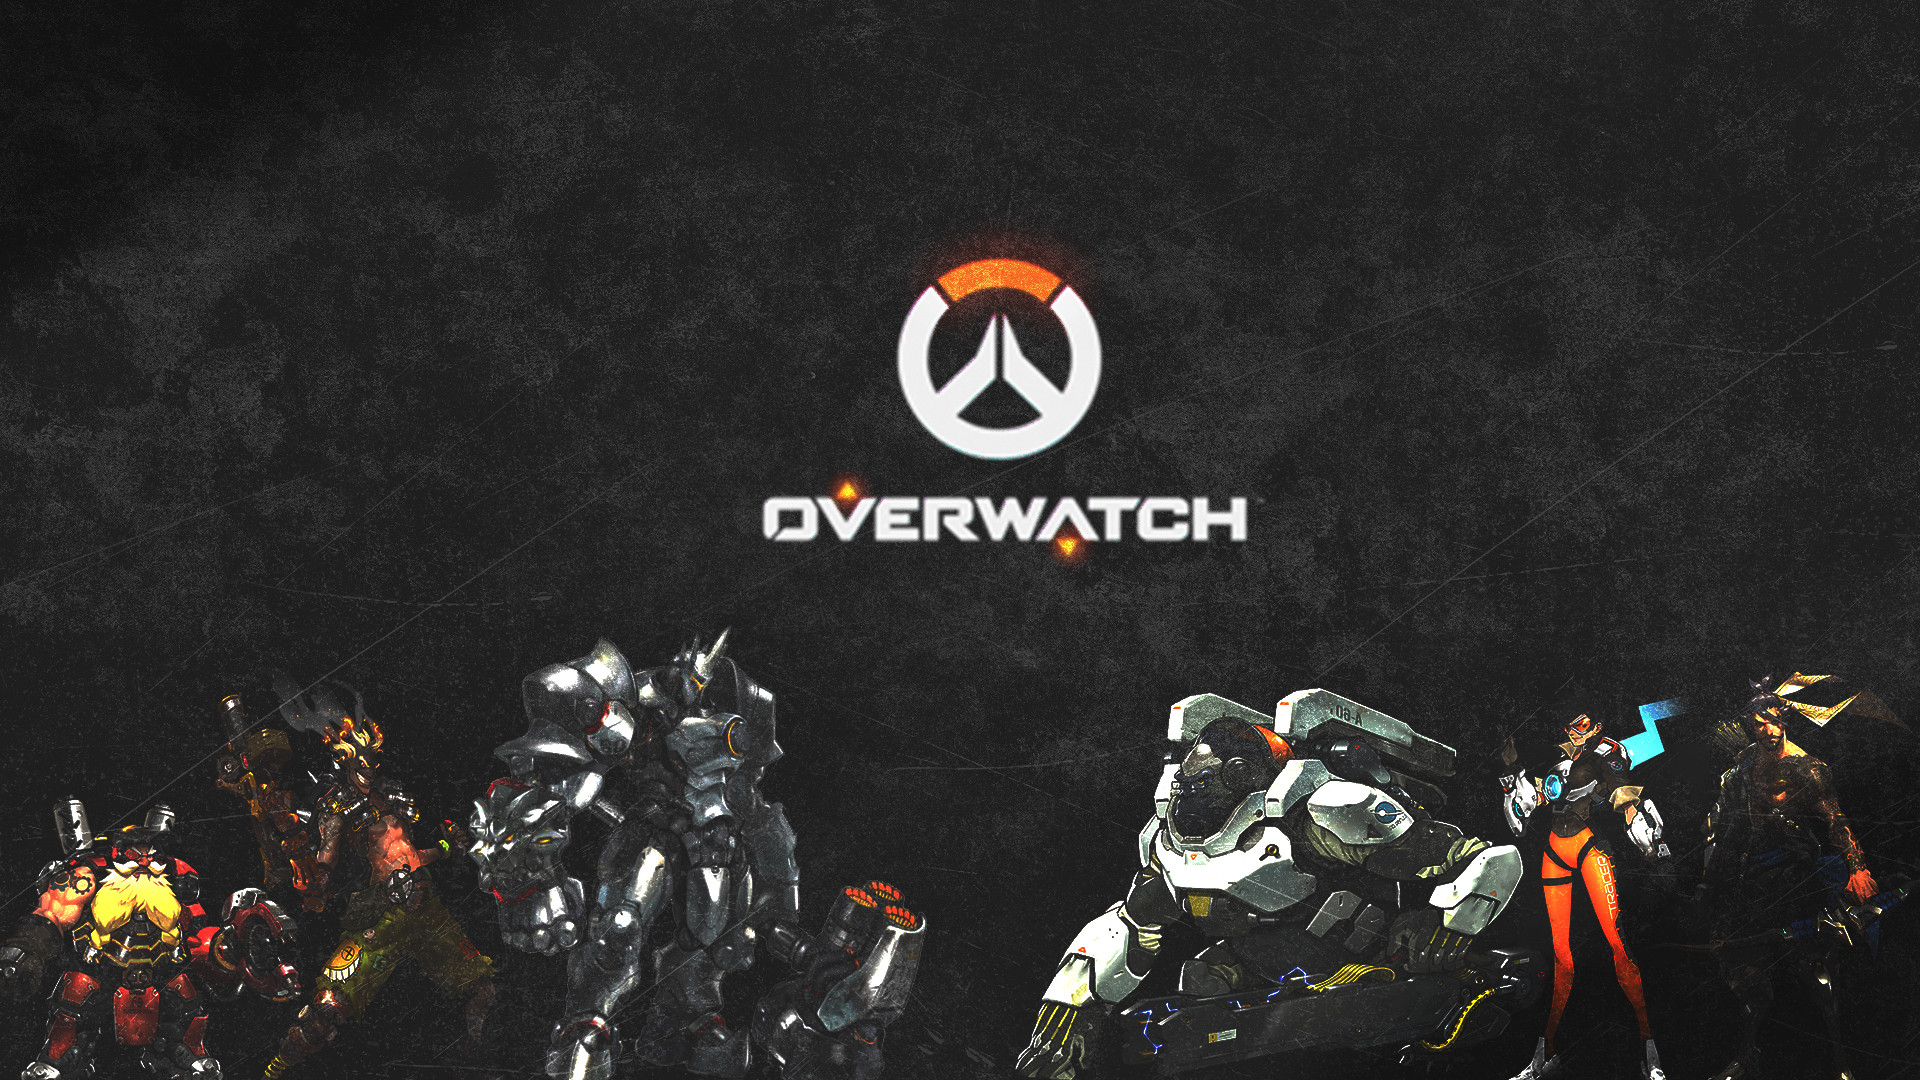 1920x1080 Video Game - Overwatch Torbjörn (Overwatch) Junkrat (Overwatch) Reinhardt ( Overwatch)